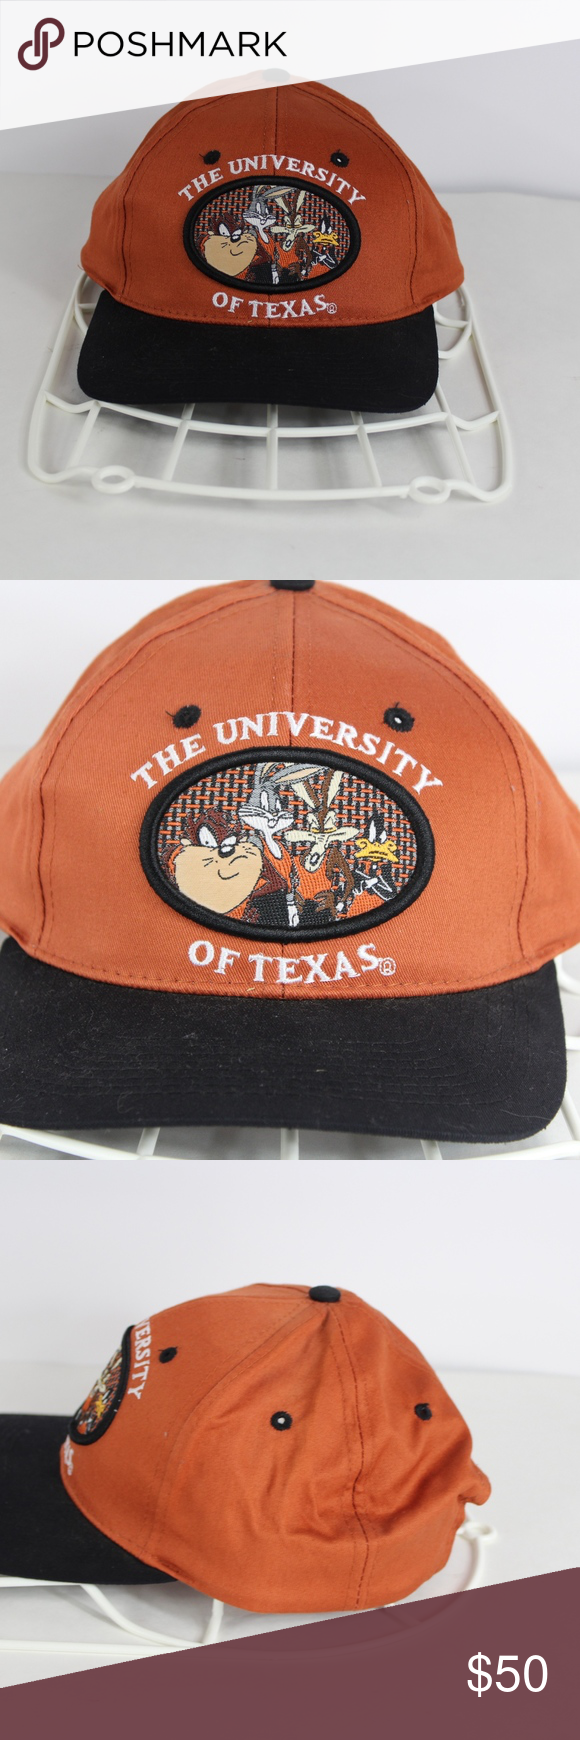 c86424f7255 ebay texas am university classic retro snapback hat maroon the collegiate  player 6784d d1950  coupon code for vintage looney tunes university of texas  hat ...